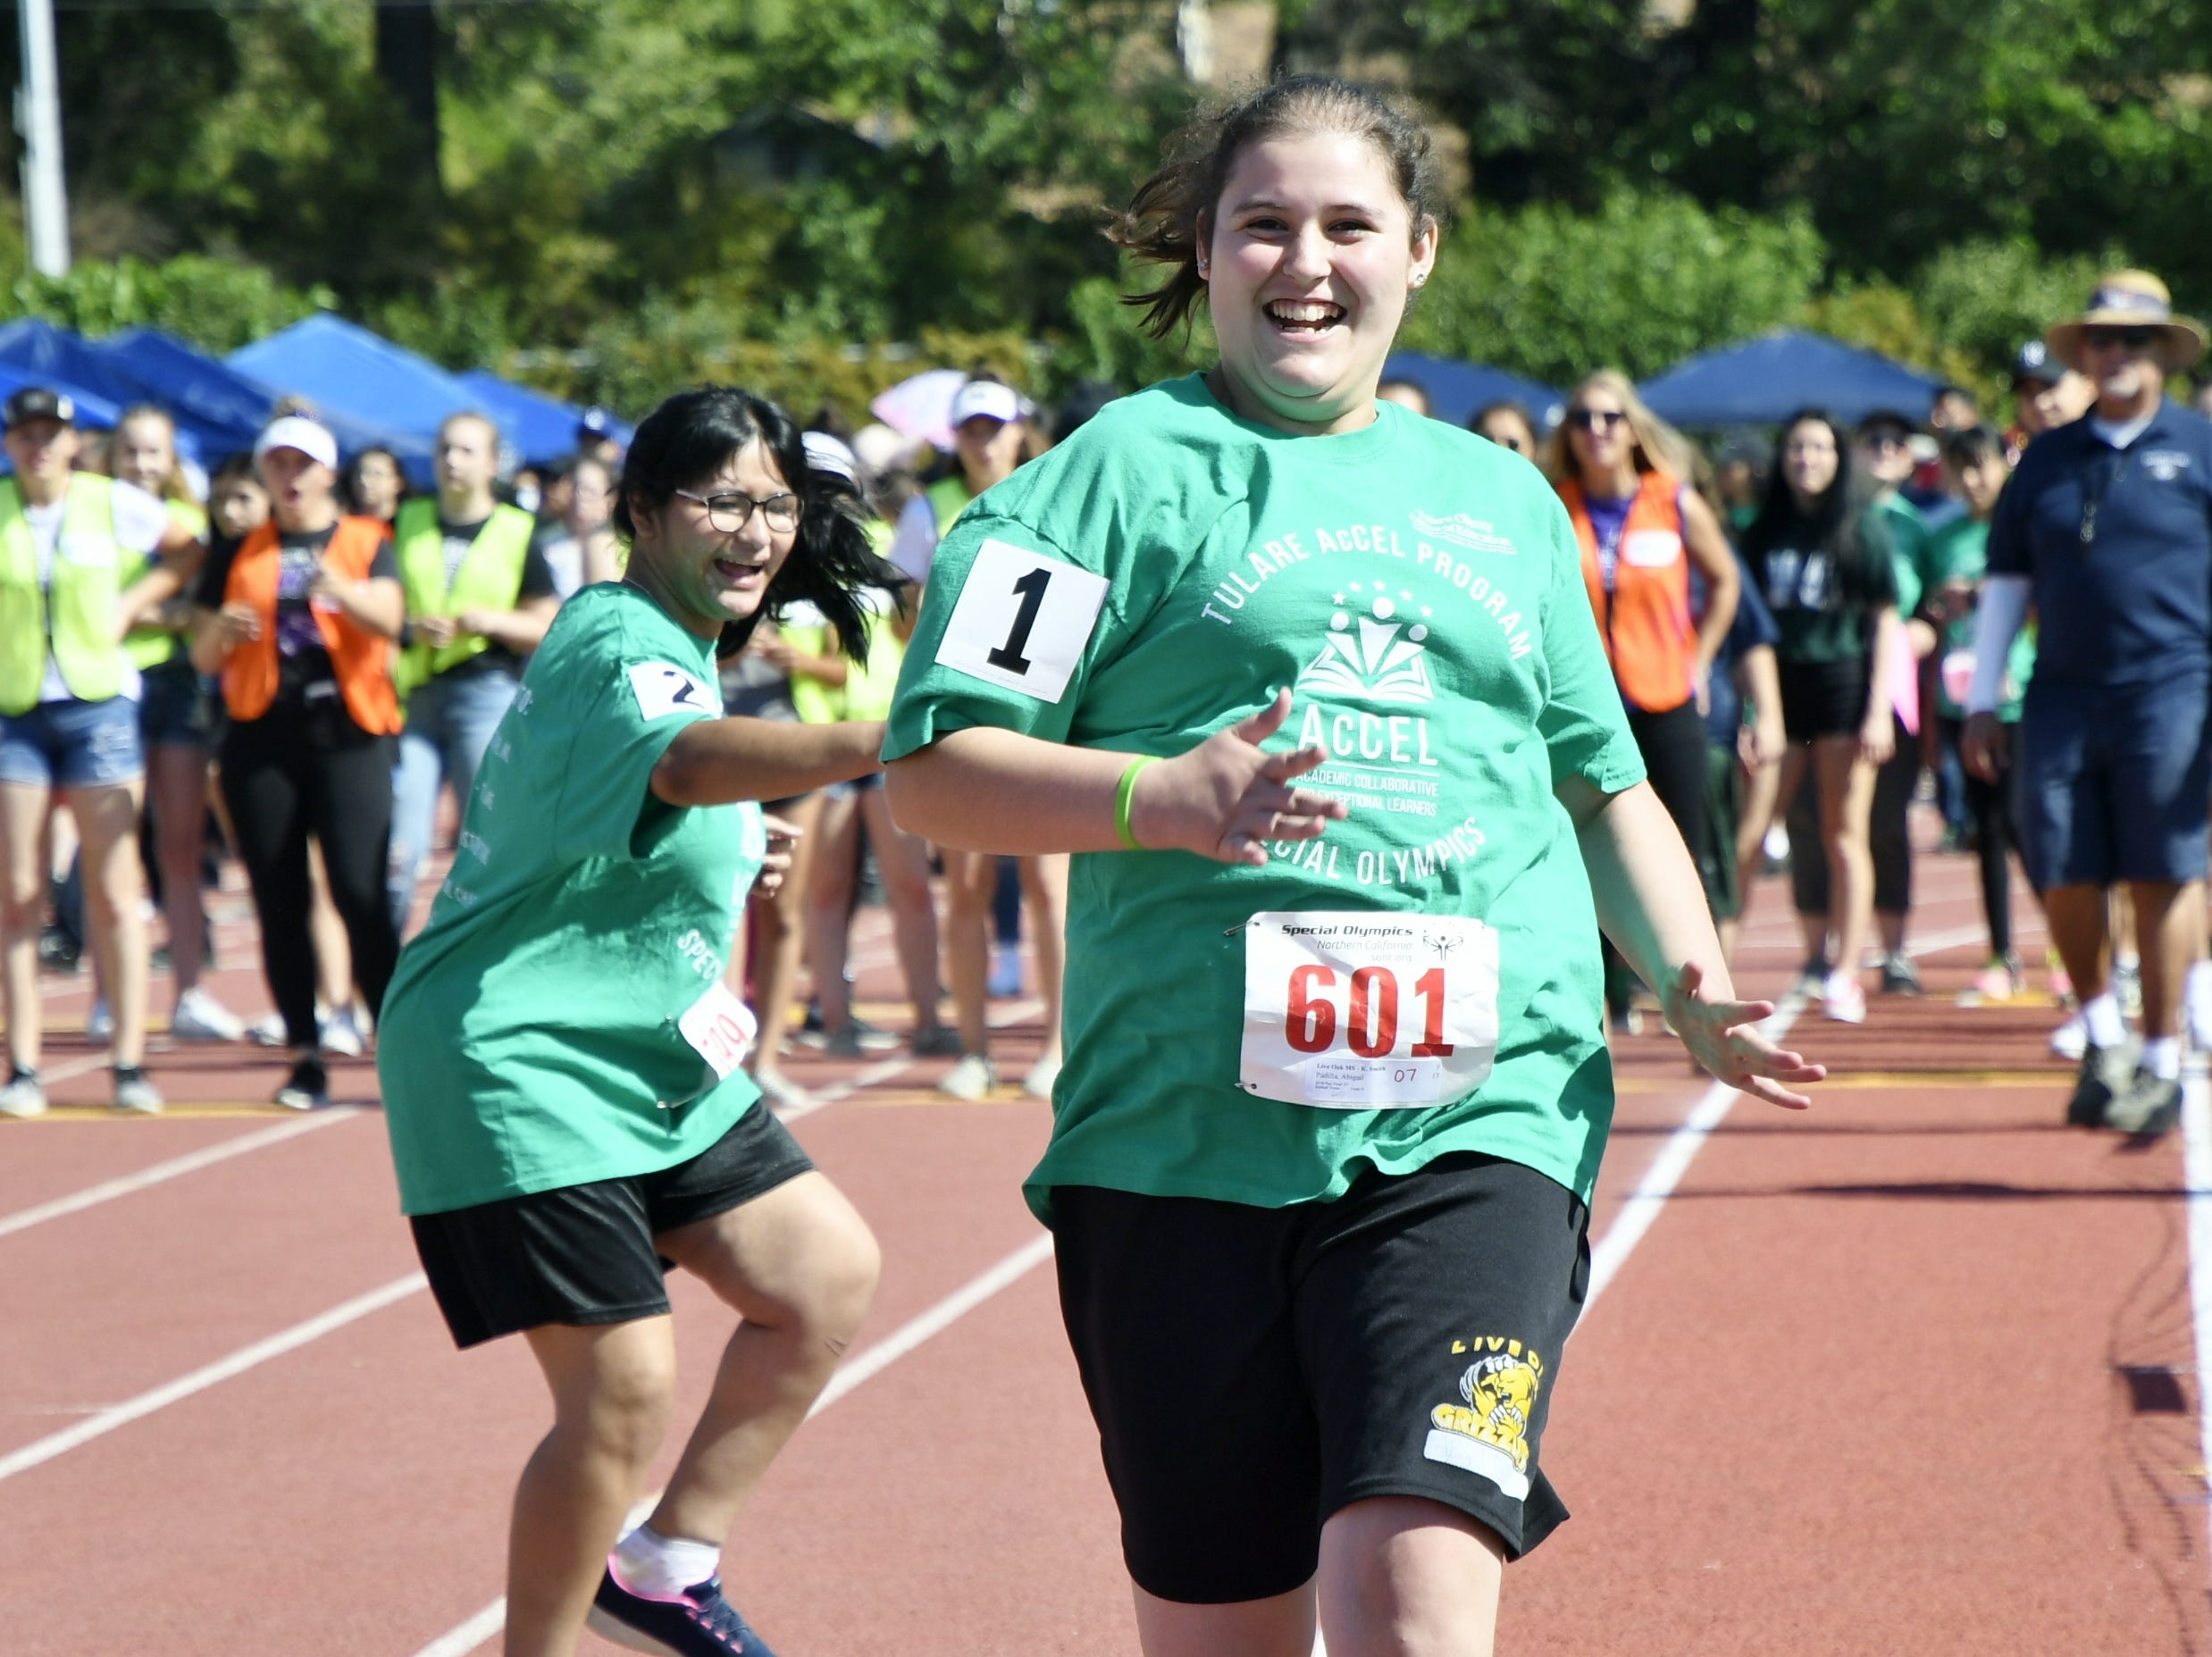 Abigail Padilla of Live Oak Middle School competes at the 2019 Tulare County Special Olympics at Bob Mathias Stadium on Friday, April 26, 2019.